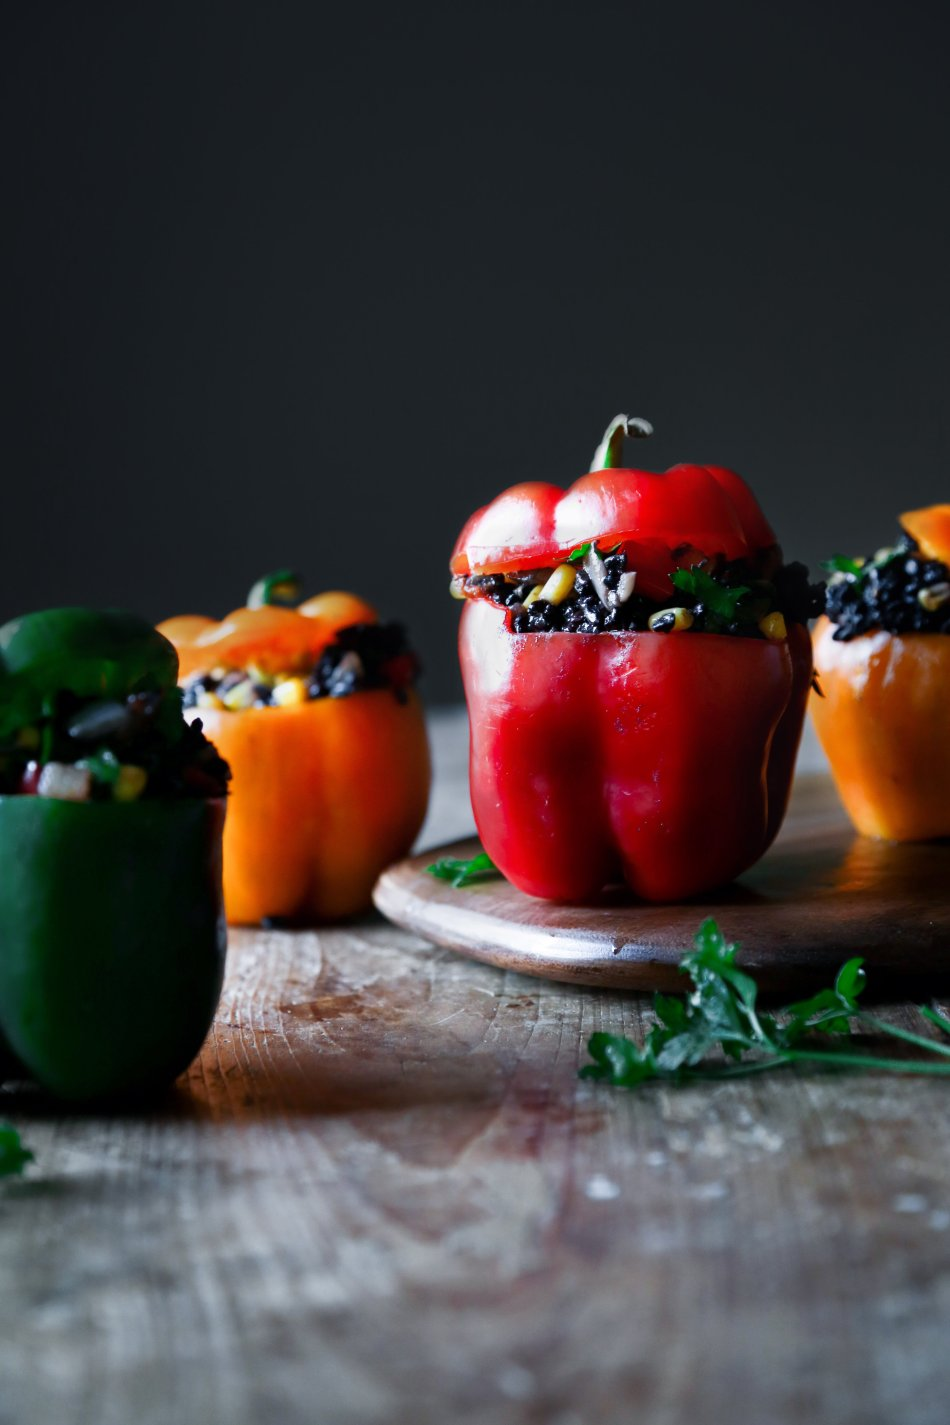 Black Rice Chicken Fajita Stuffed Peppers | Gluten and dairy free. Omit chicken for vegan/vegetarian version.